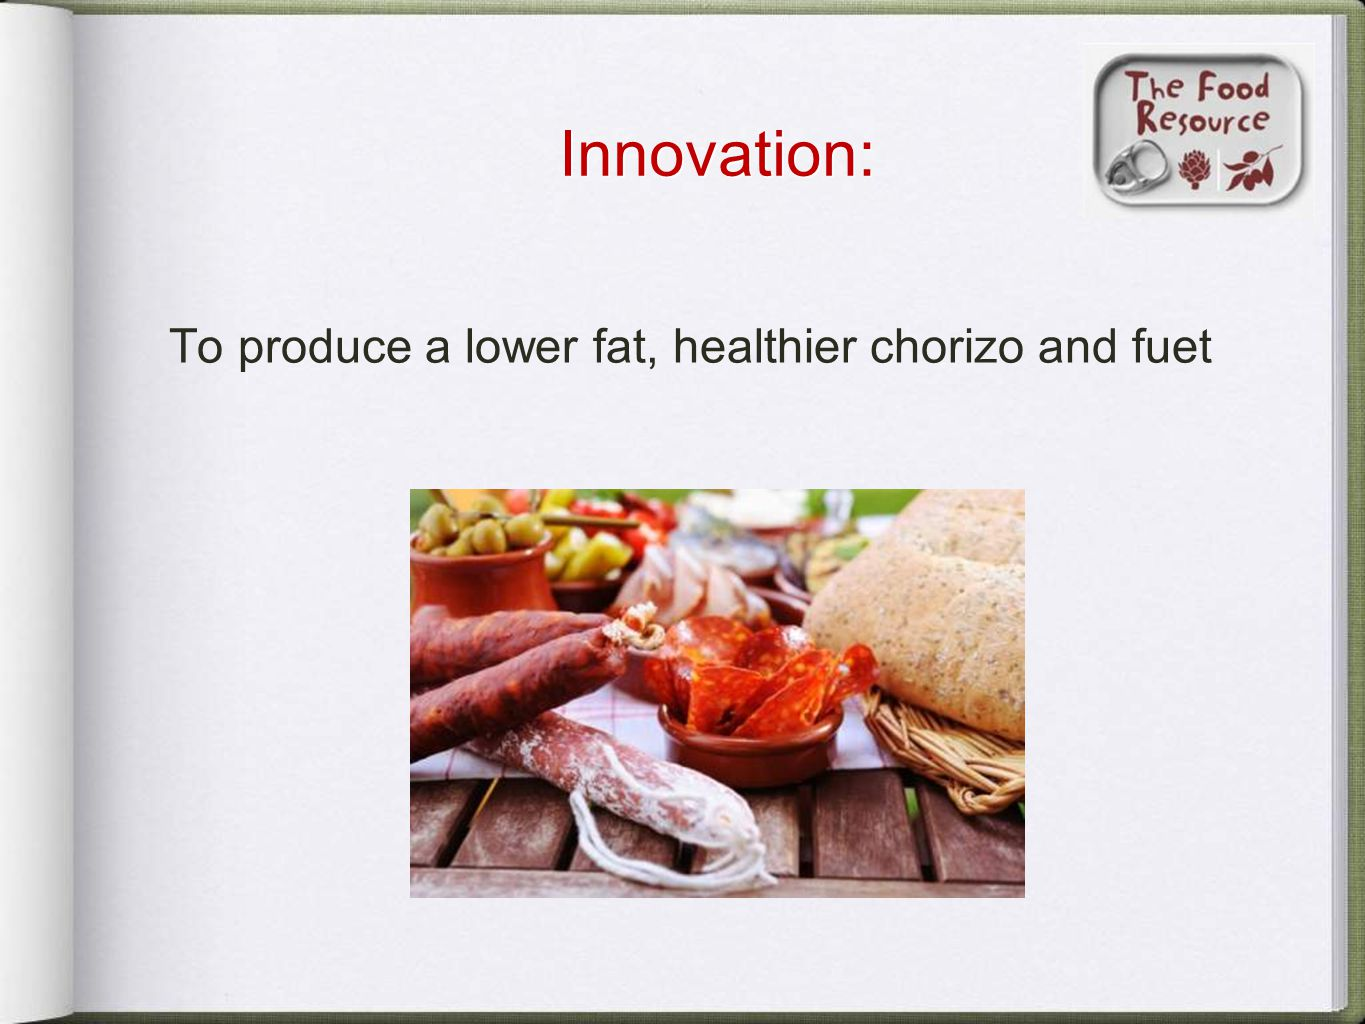 Innovation: To produce a lower fat, healthier chorizo and fuet